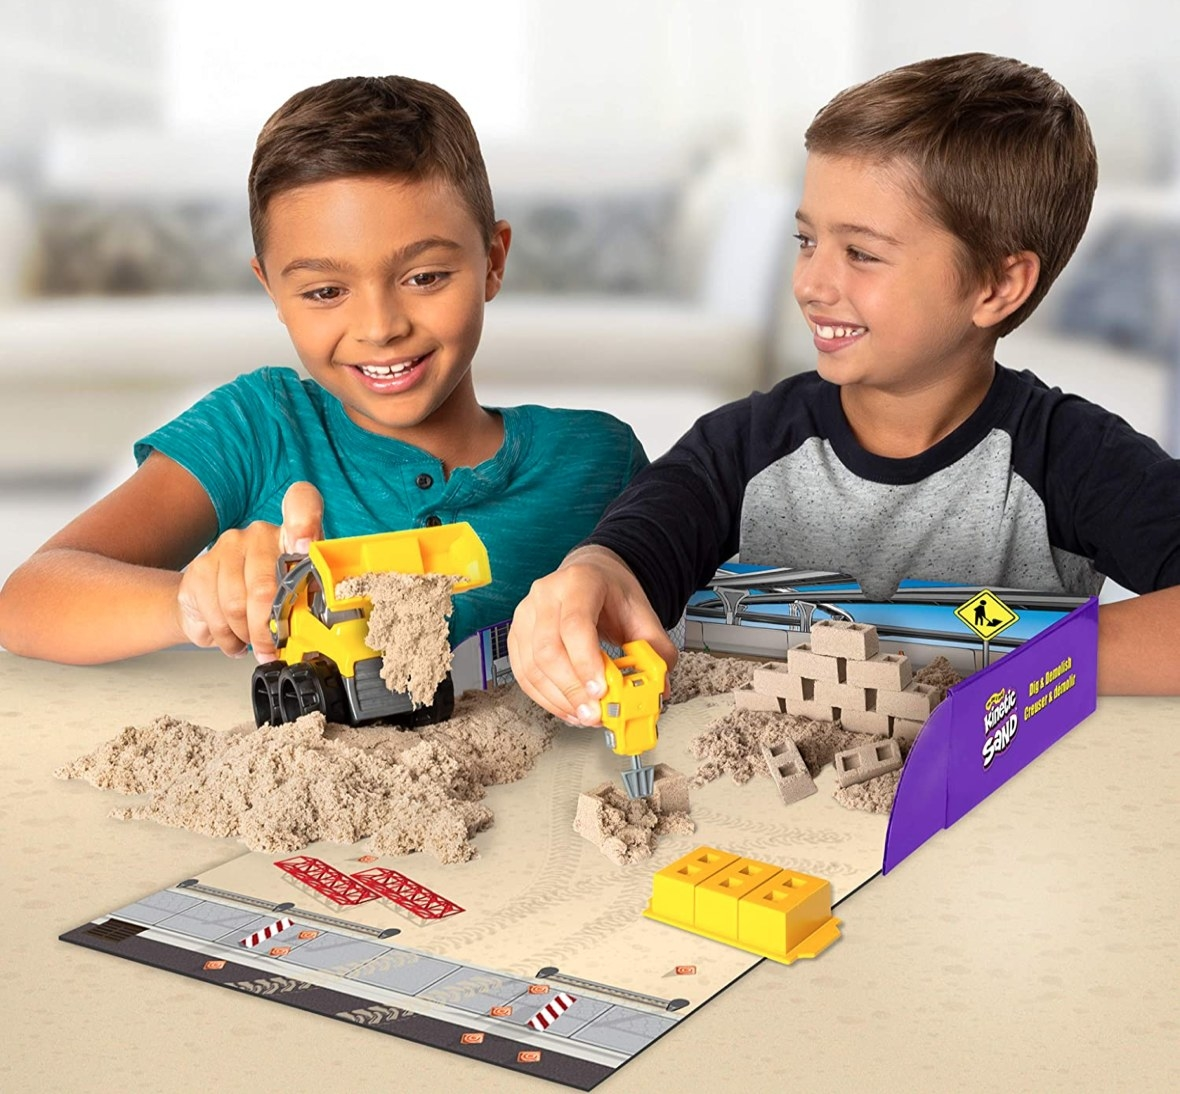 Two boys play with a a truck in a kinetic sand set.